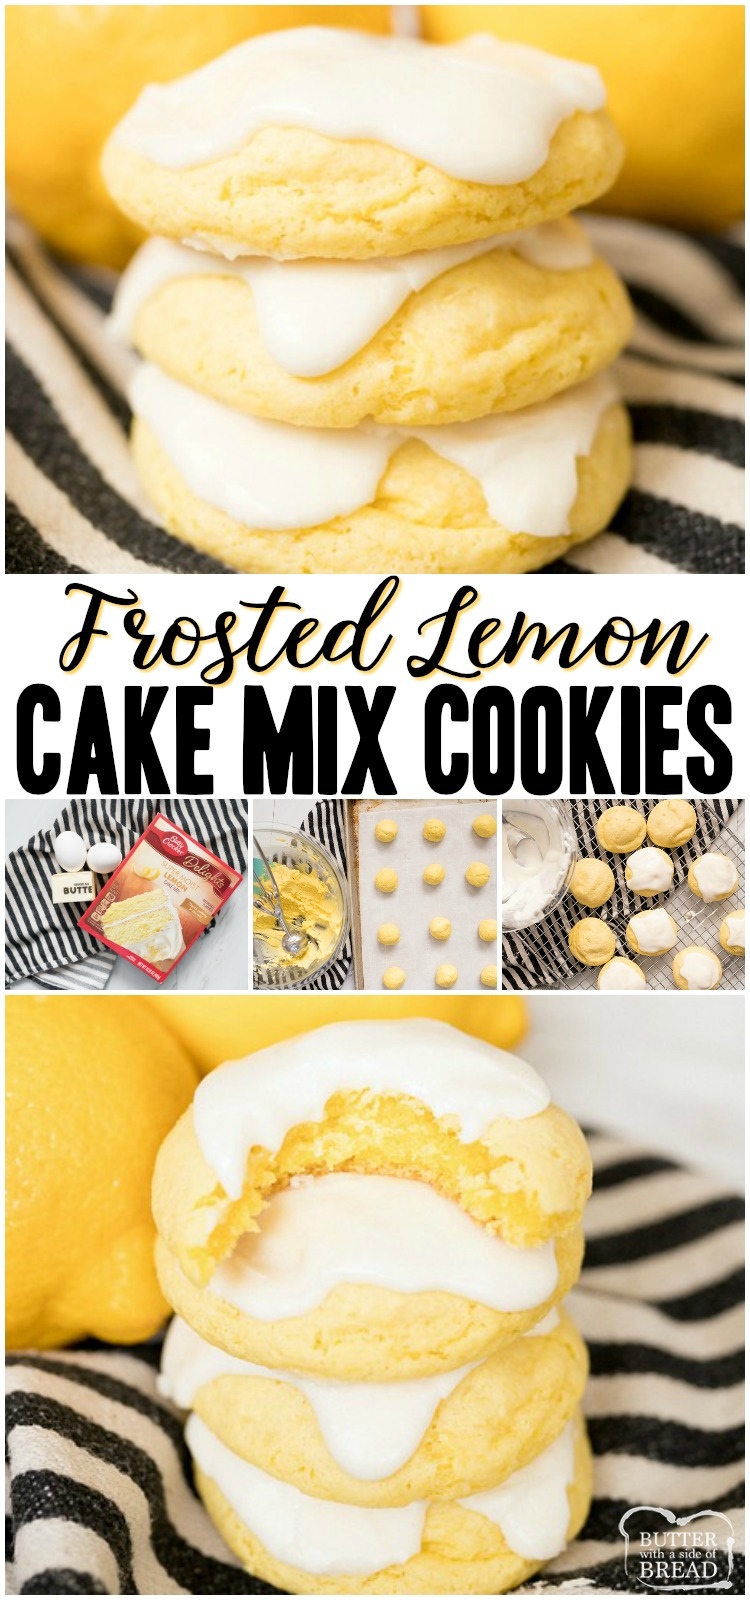 Lemon Cake Mix Cookies are soft & delicious lemon cookies made using a Lemon Cake Mix, butter and eggs. Topped with a sweet lemon glaze, this quick & easy lemon cake mix cookie recipe is the best! #lemon #cookies #cakemix #cookie #recipe #dessert #baking #lemons from BUTTER WITH A SIDE OF BREAD